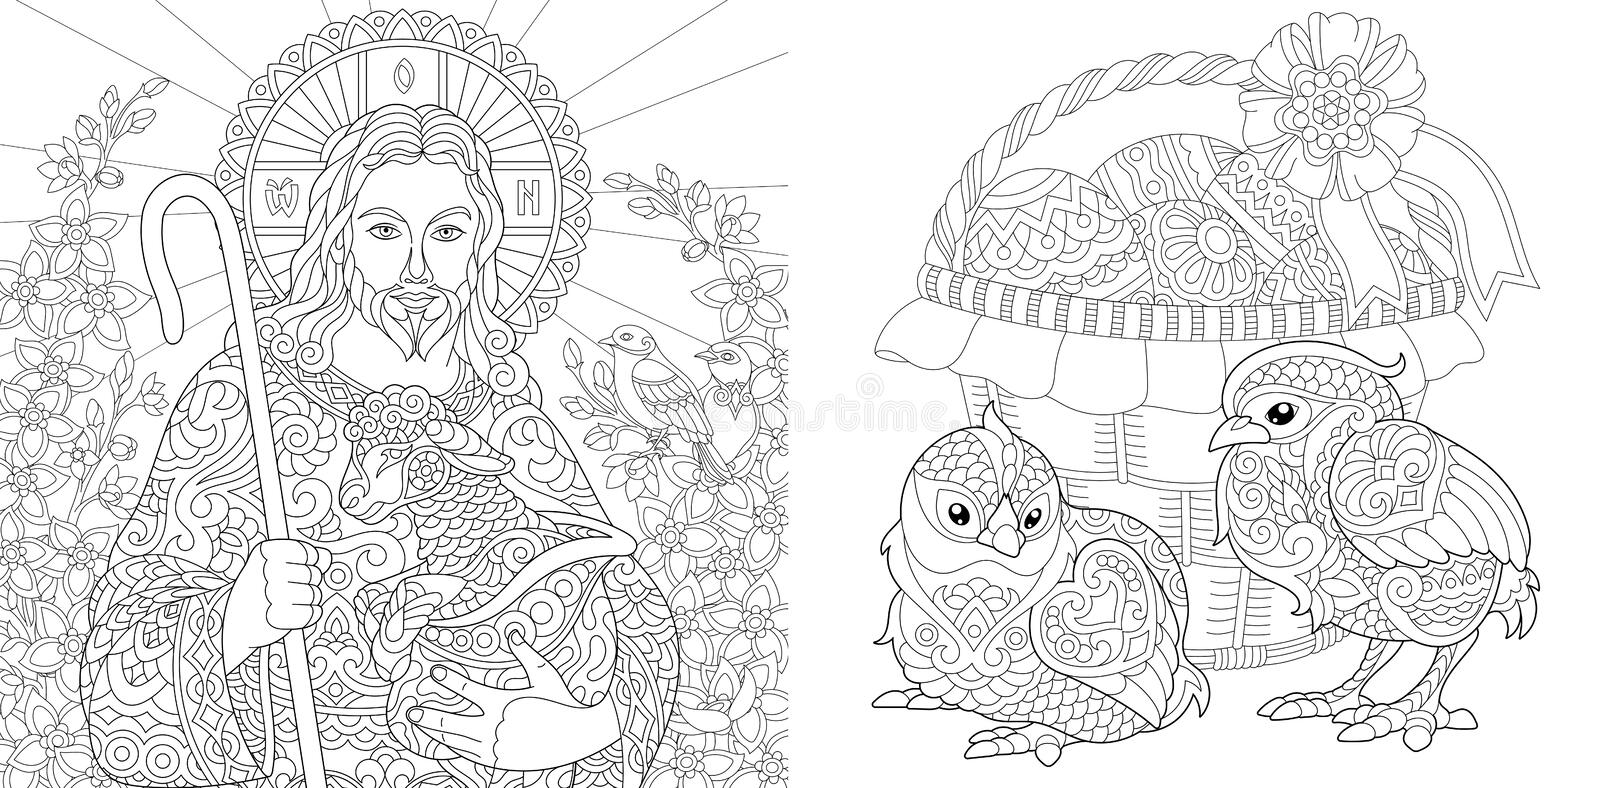 Easter. Coloring Pages. Coloring Book for adults. Colouring pictures with Jesus and chickens drawn in zentangle style. Vector royalty free illustration